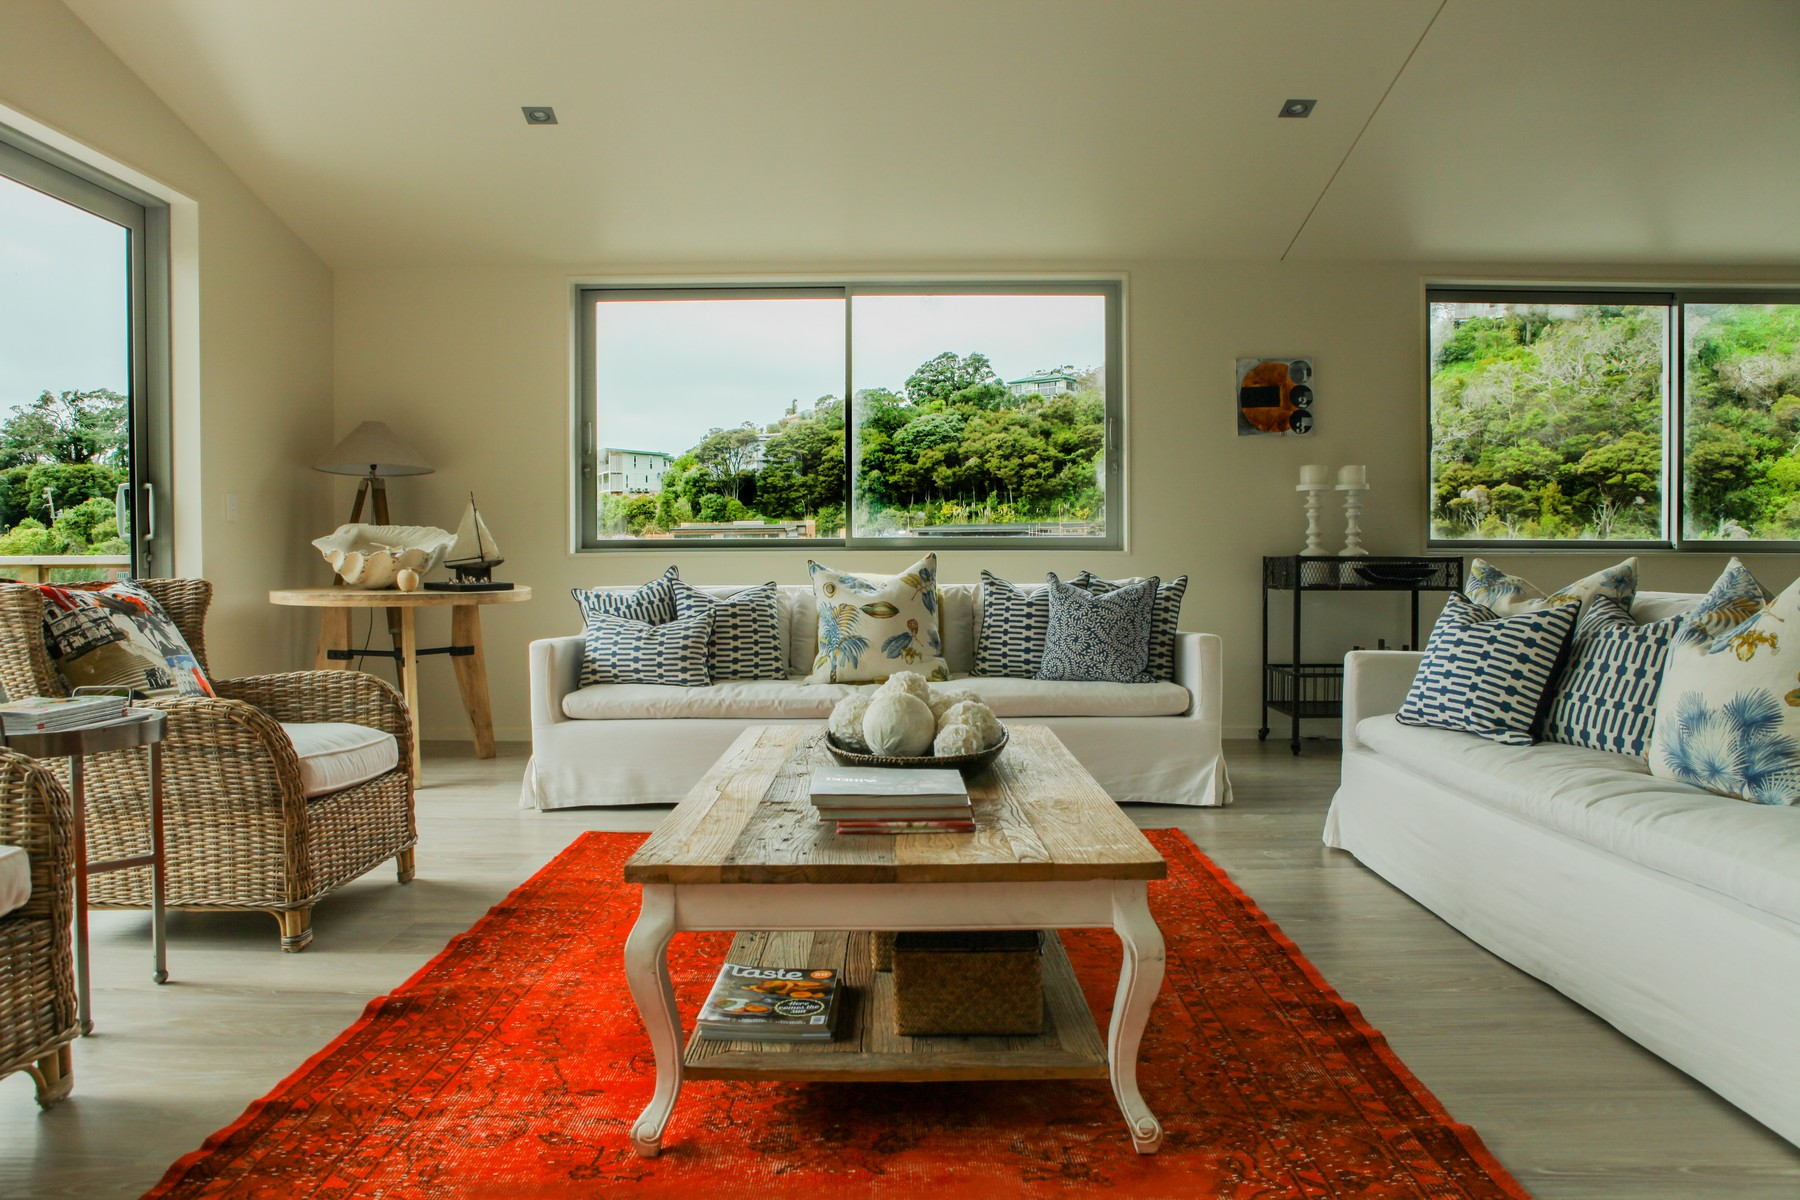 Single Family Home for Sale at 39b Miro Road, Palm Beach 39b Miro Road Palm Beach Waiheke Island, Auckland 1081 New Zealand